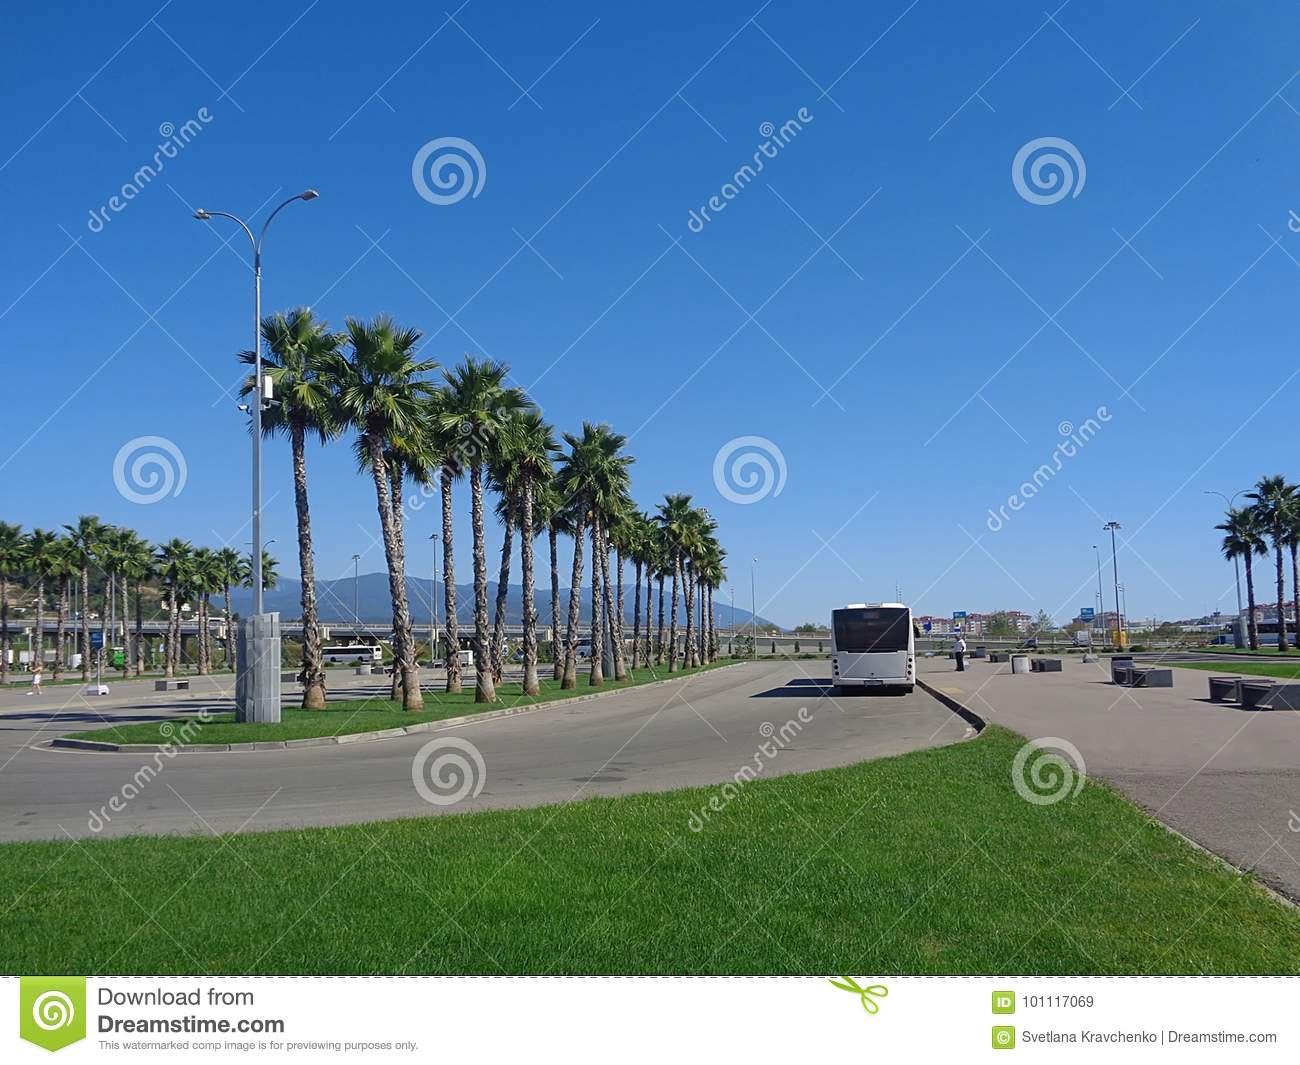 Bus stop, palm trees and green grass on the lawn